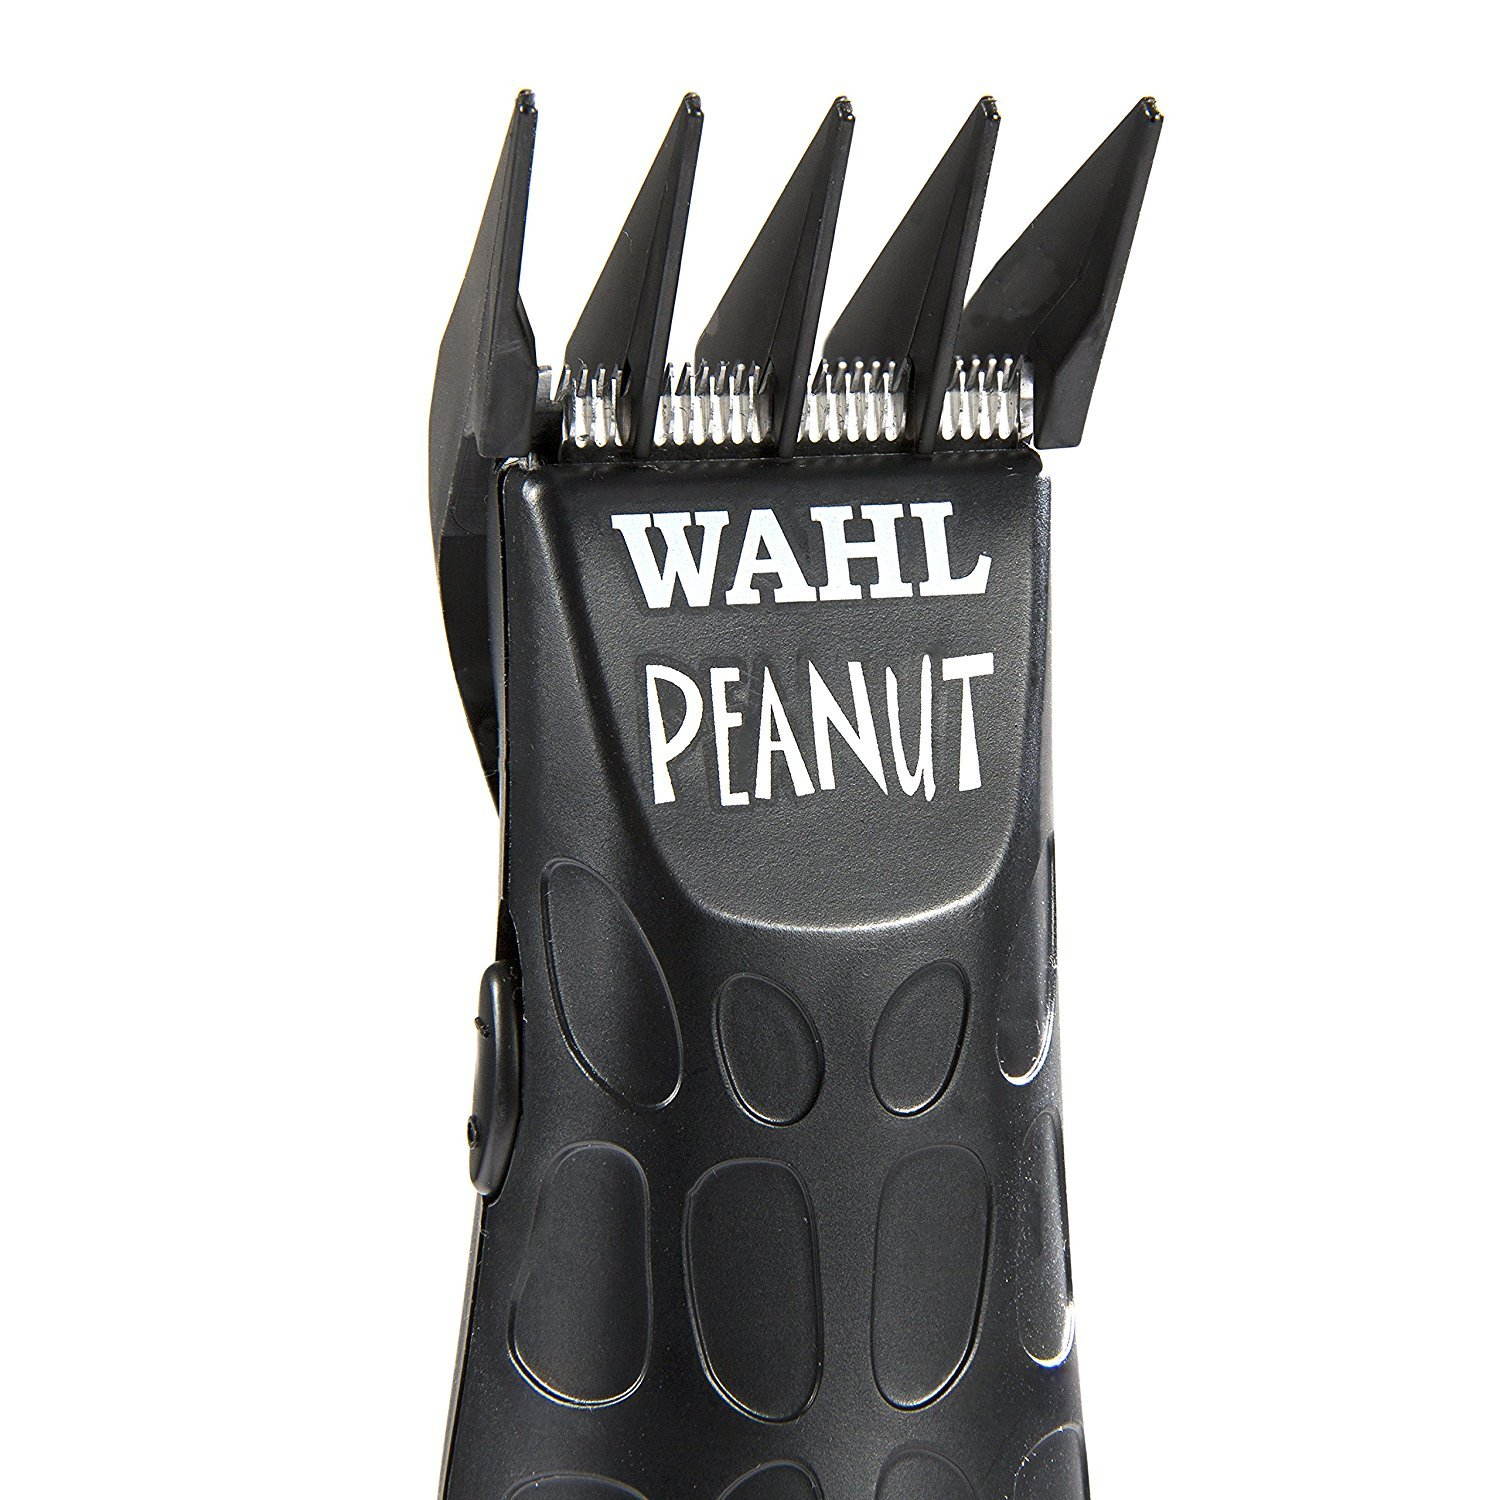 Wahl Professional Peanut Clipper/Trimmer #8655 with Travel Storage Case #90728 – Great for Barbers and Stylists by Wahl Professional (Image #4)